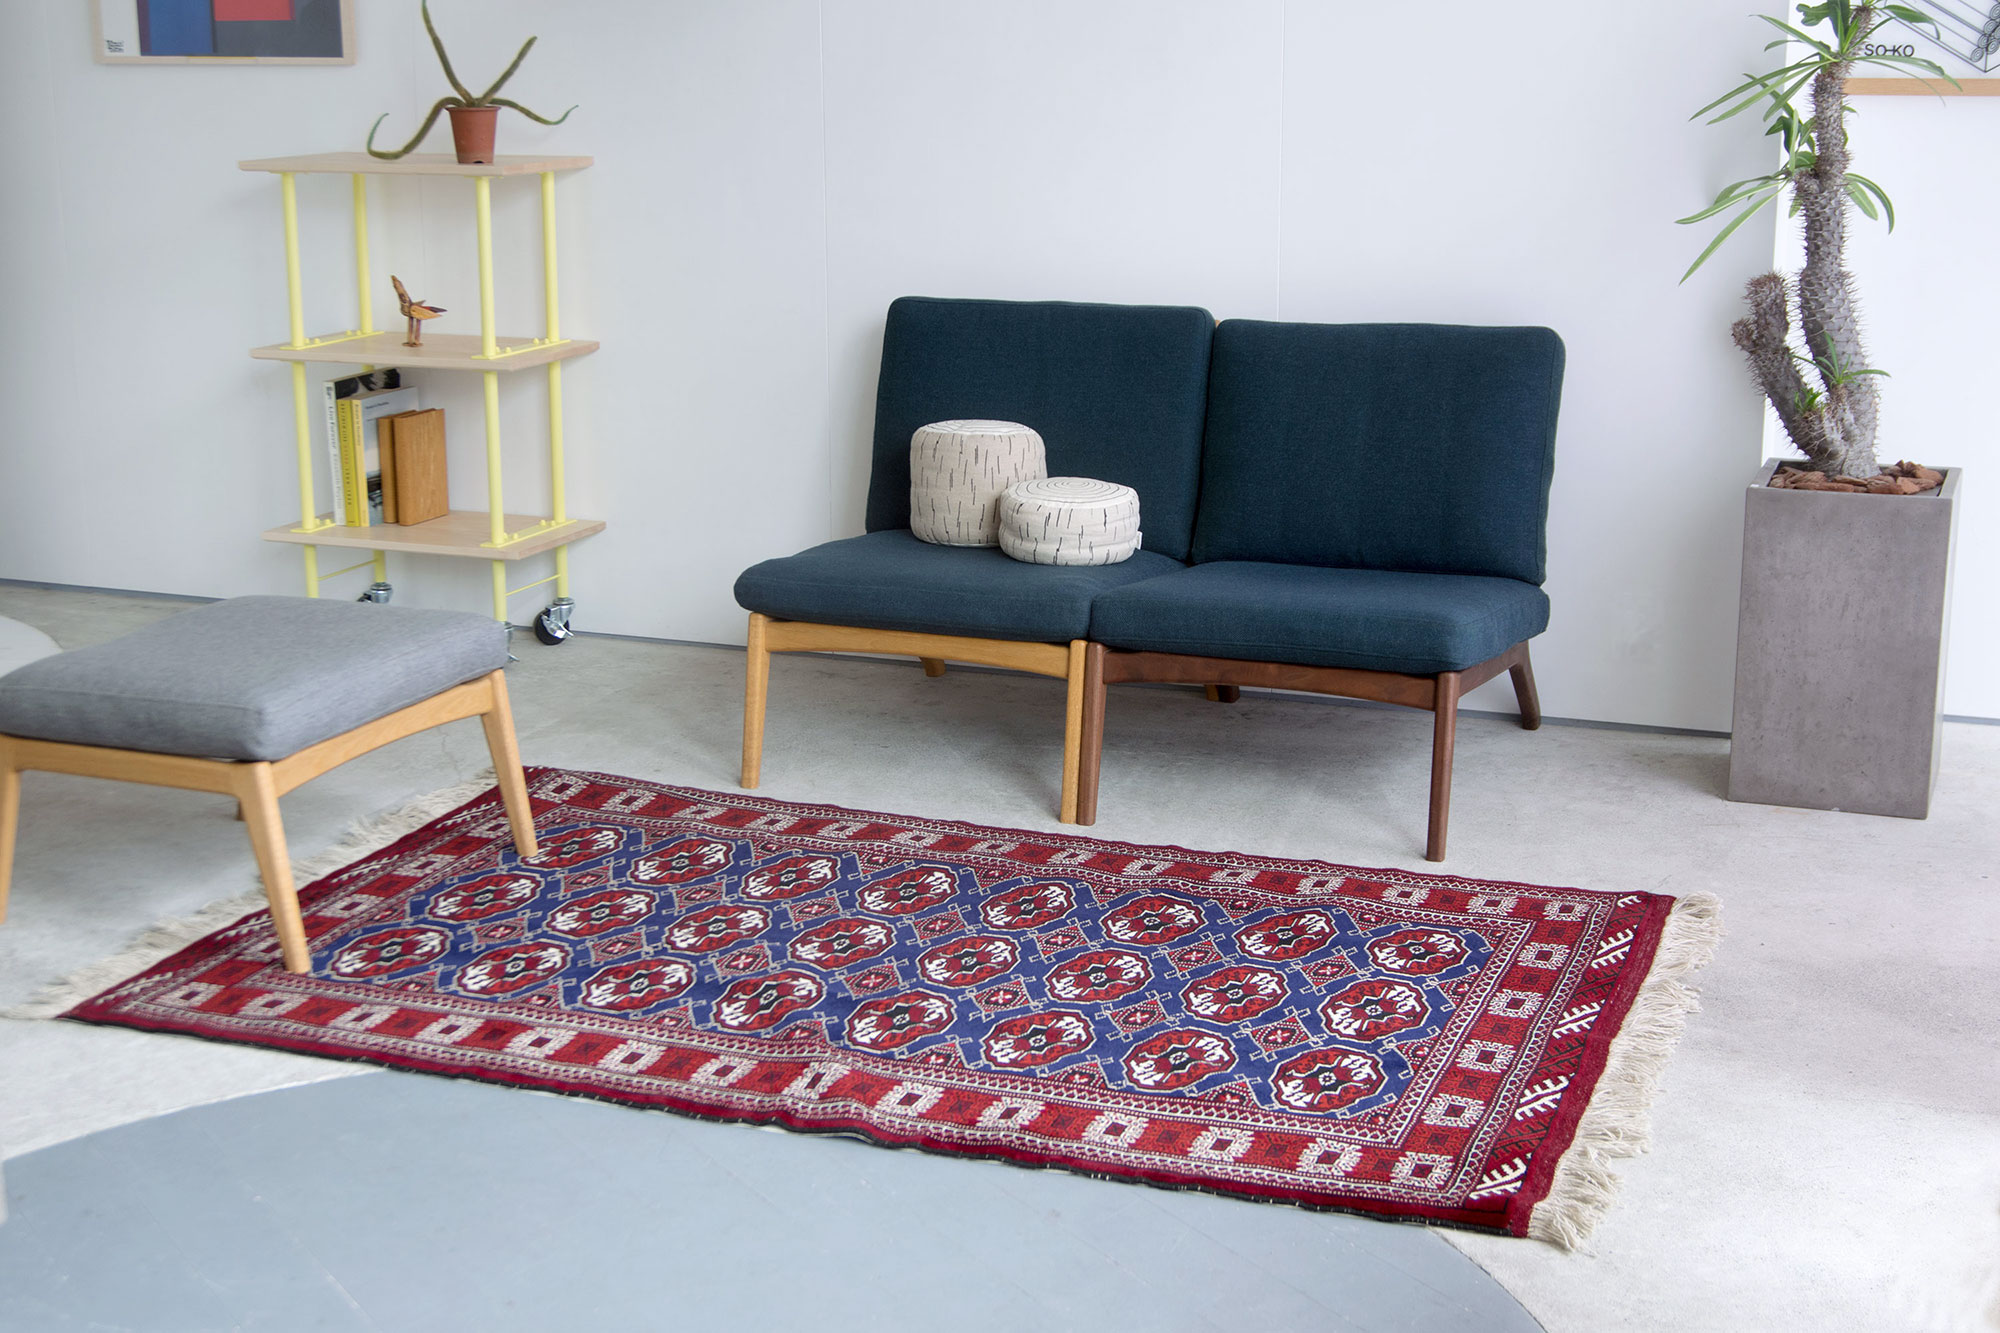 『Layout』POP UP -Tribal rug FAIR